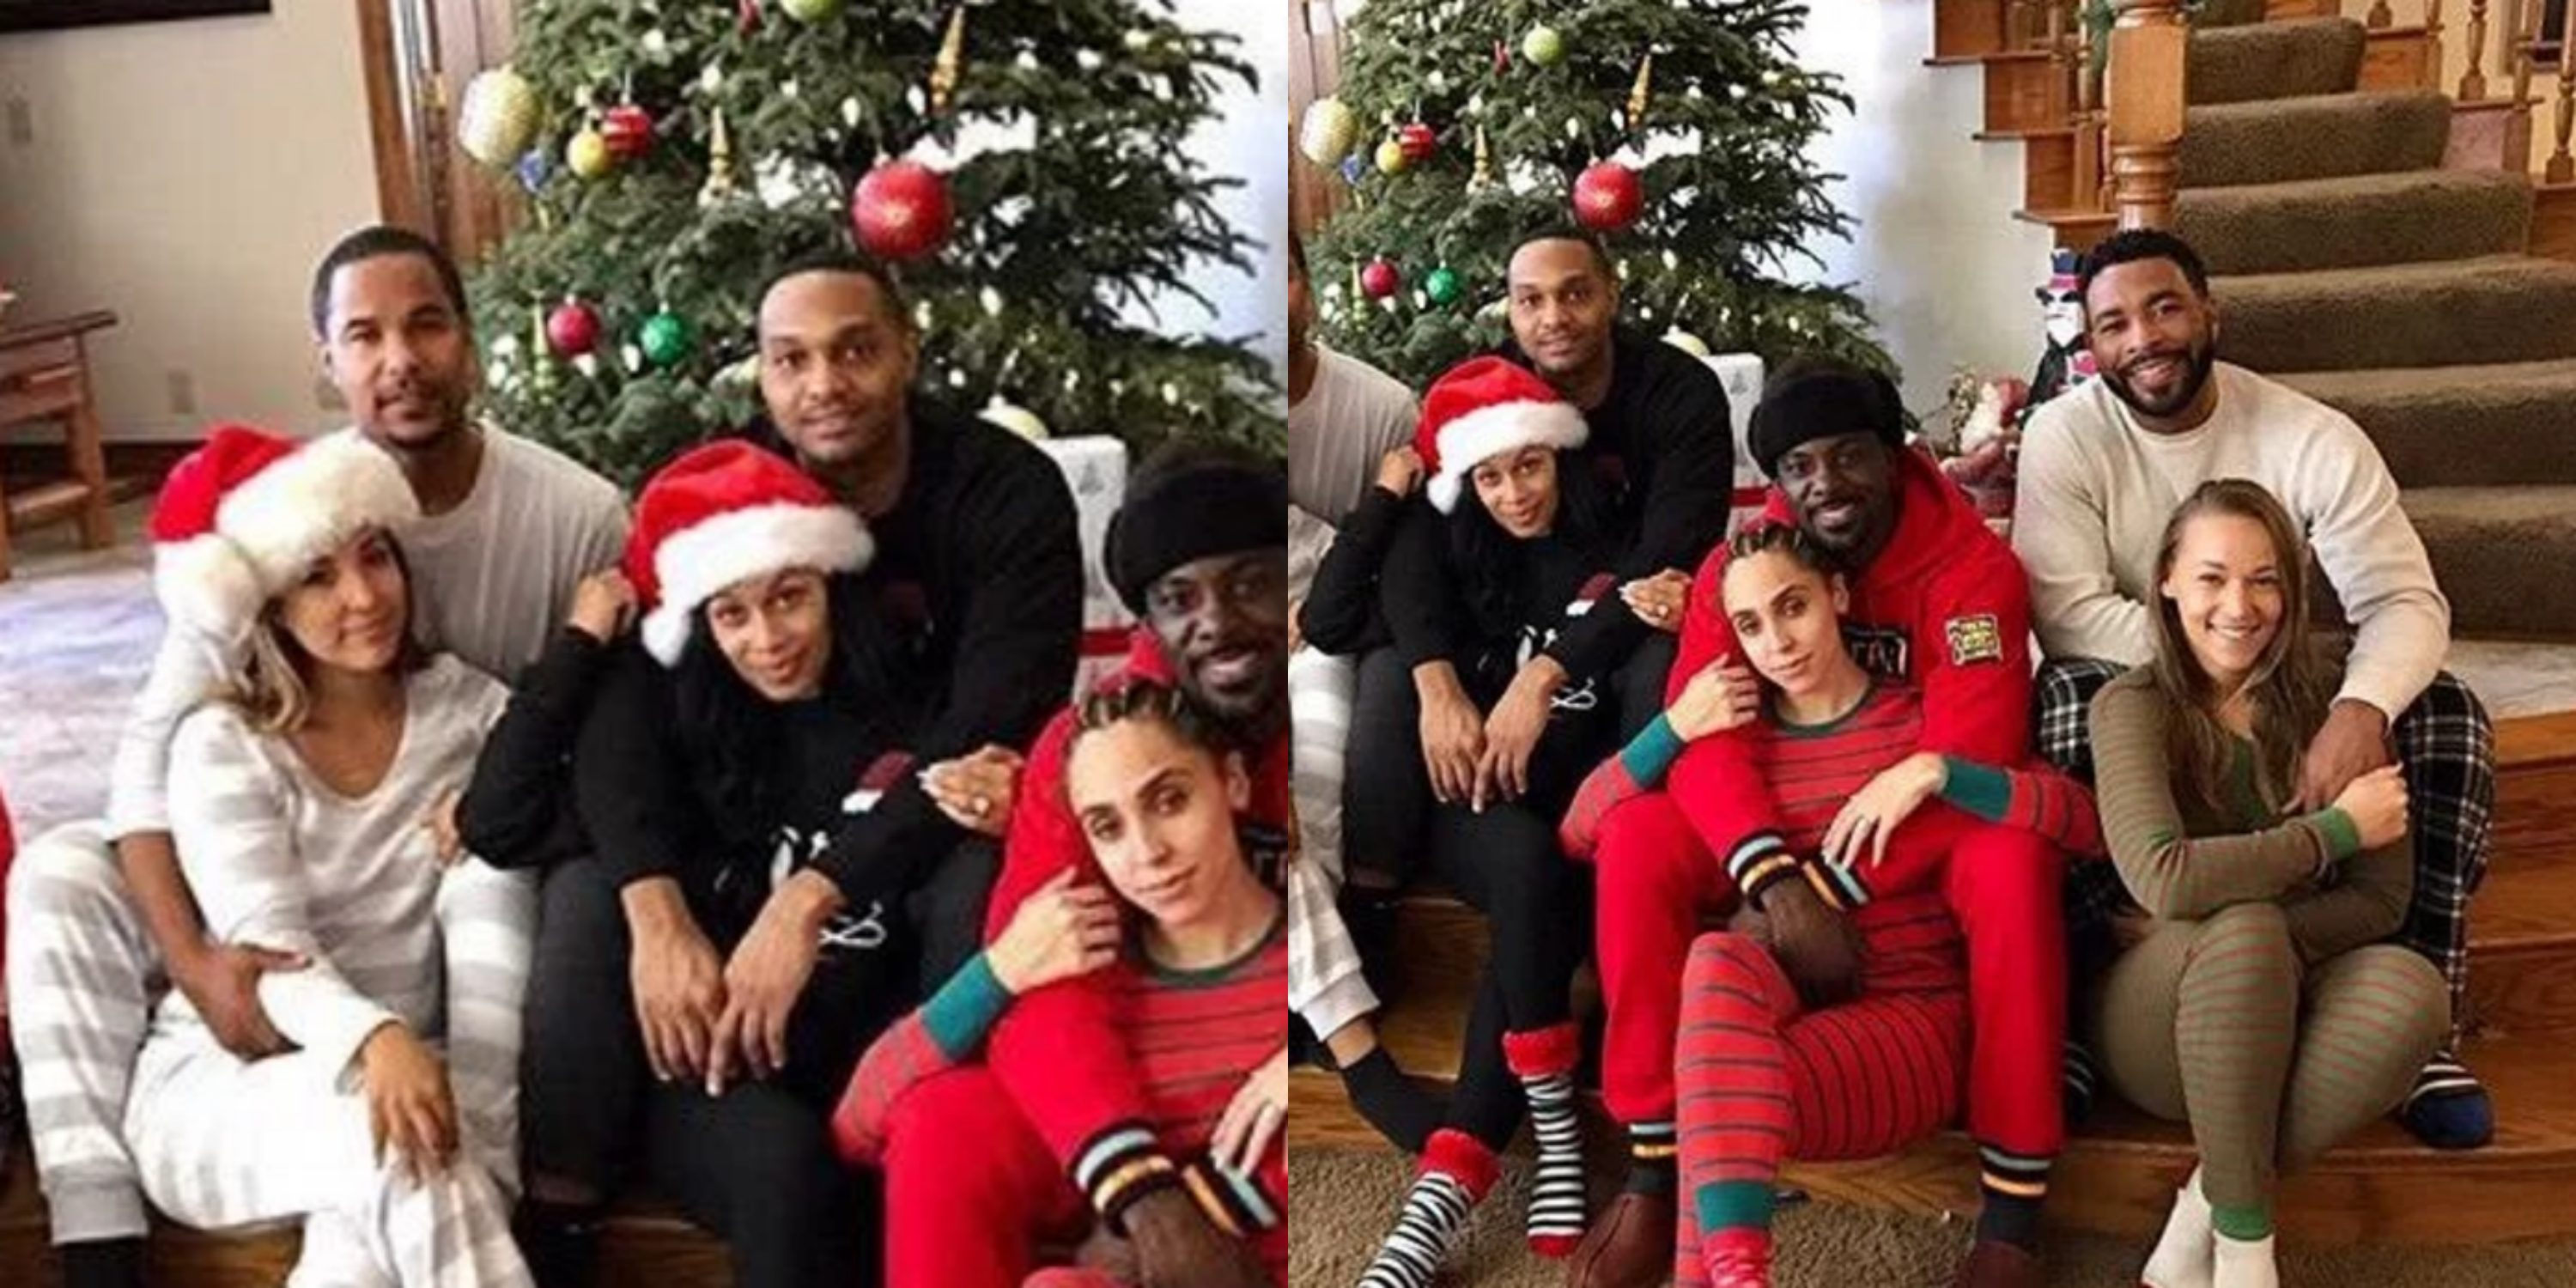 Was This Picture of Lance Gross & Friends Just For Fun? Or a Clear ...